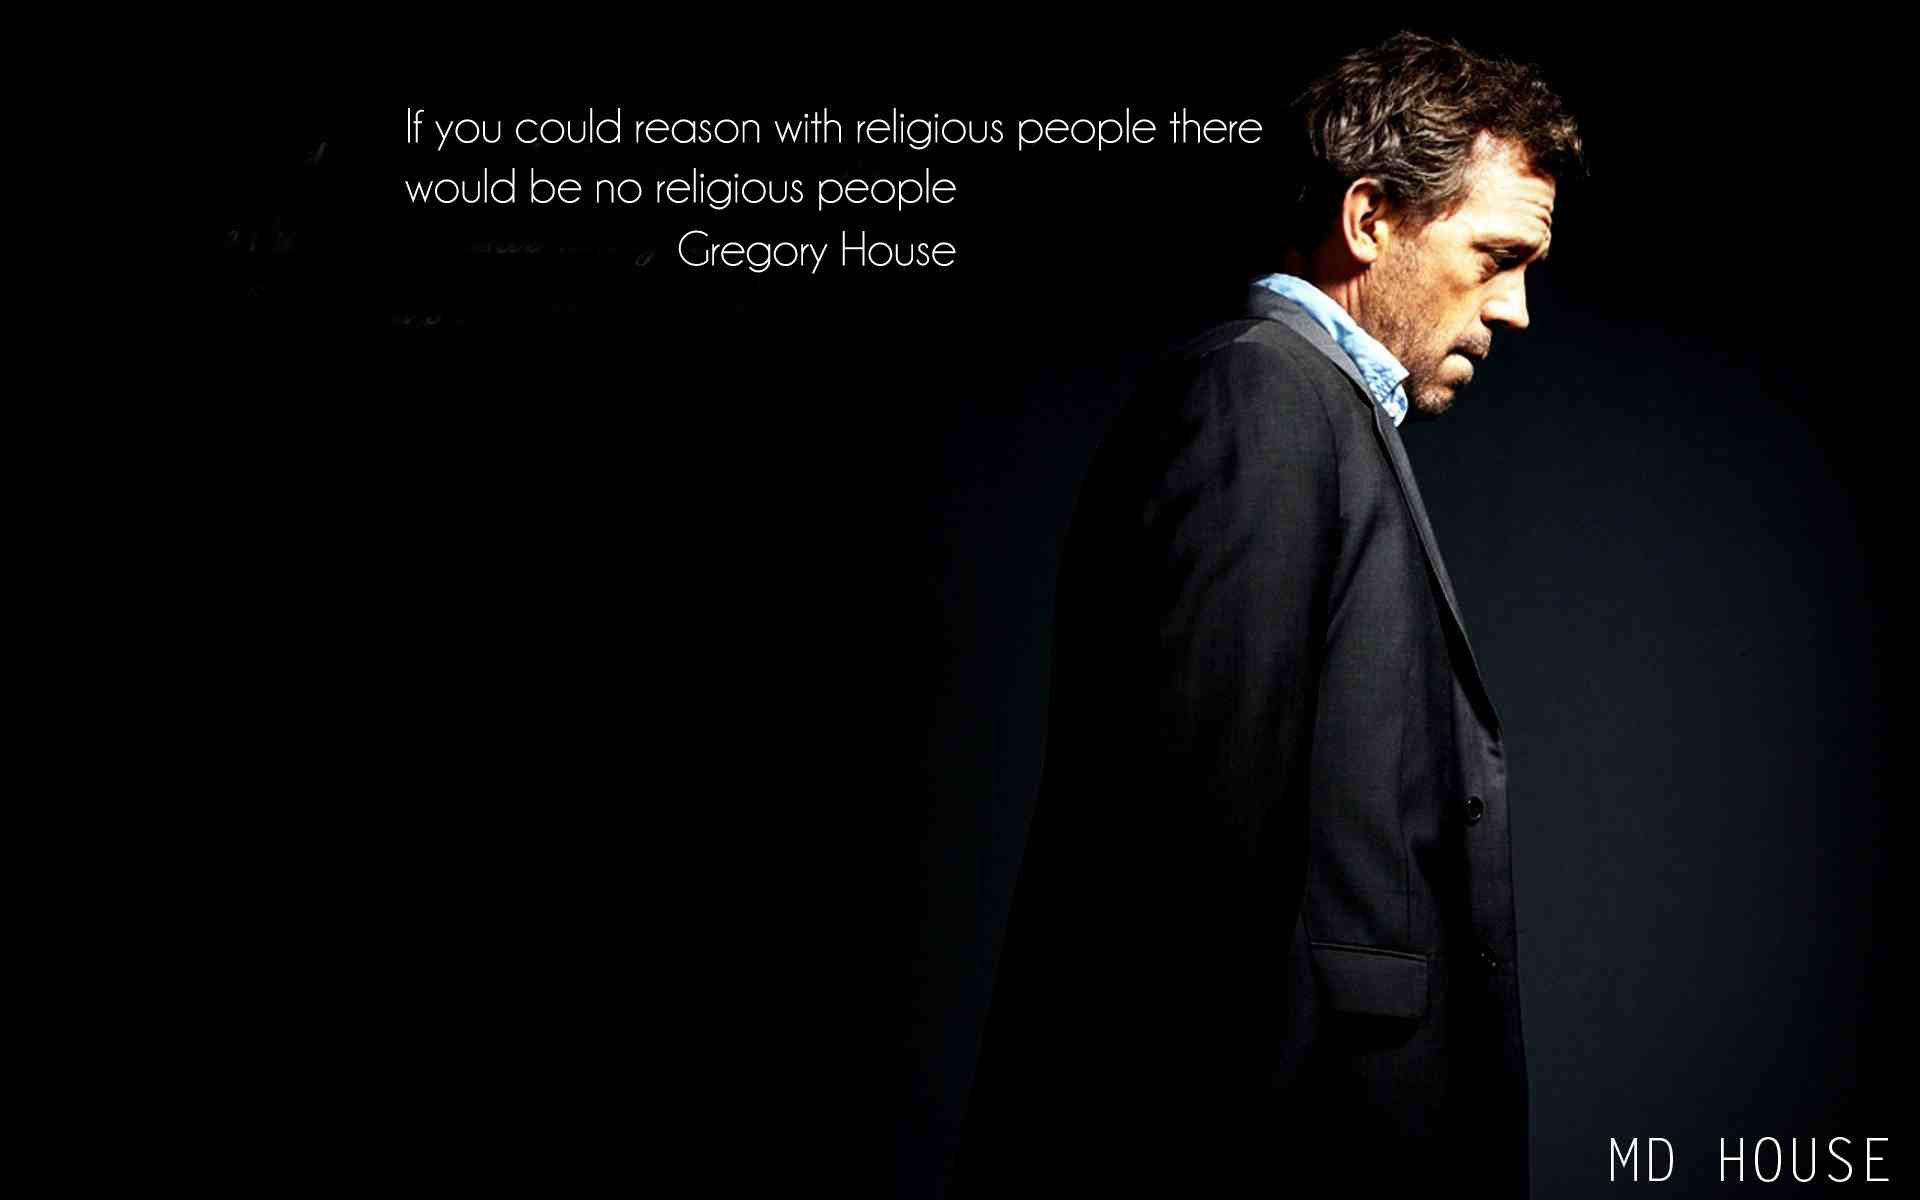 If you could reason with religious people , there would be no